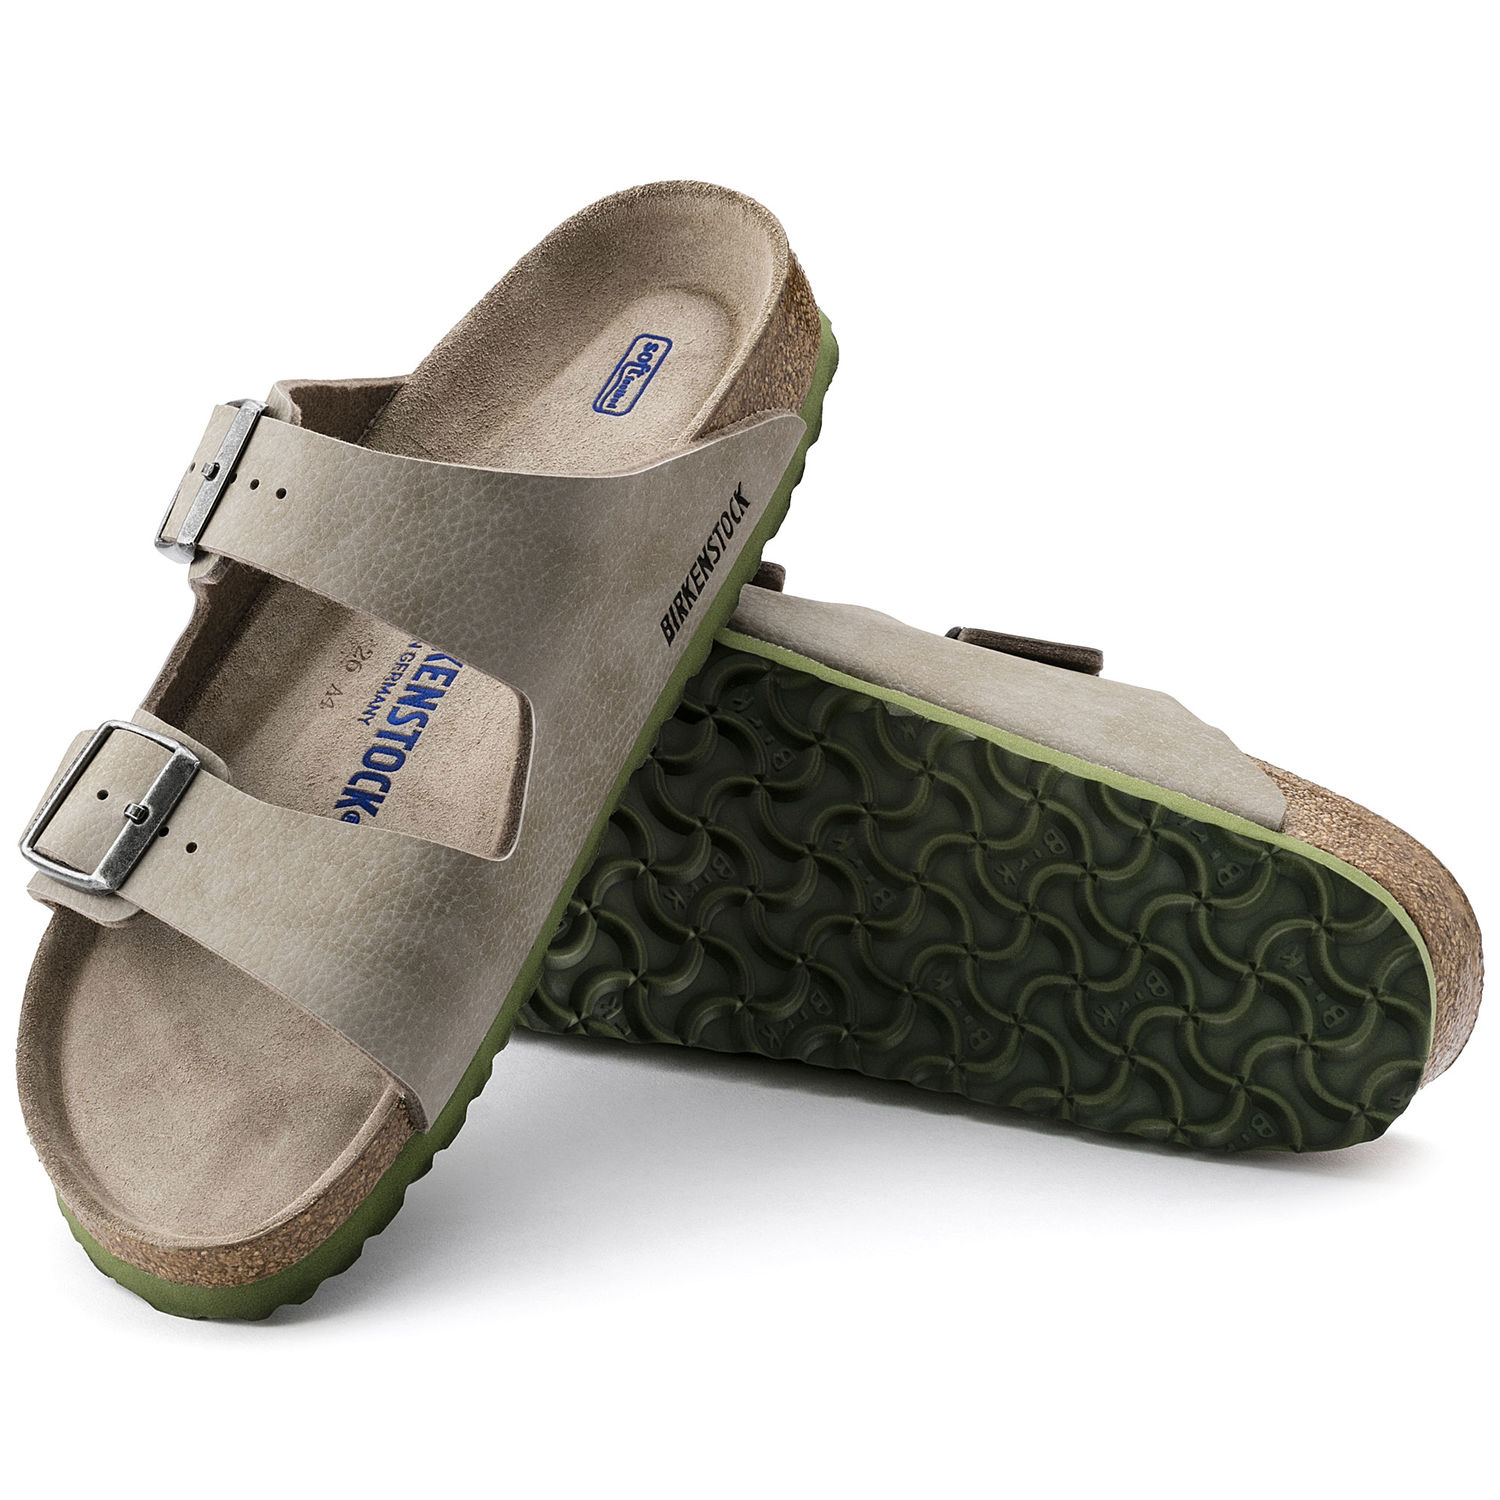 3533126a0 BIRKENSTOCK ARIZONA WOMEN FLIP FLOPS SOFT FOOTBED WITH DOUBLE BUCKLE STEER  TAUPE